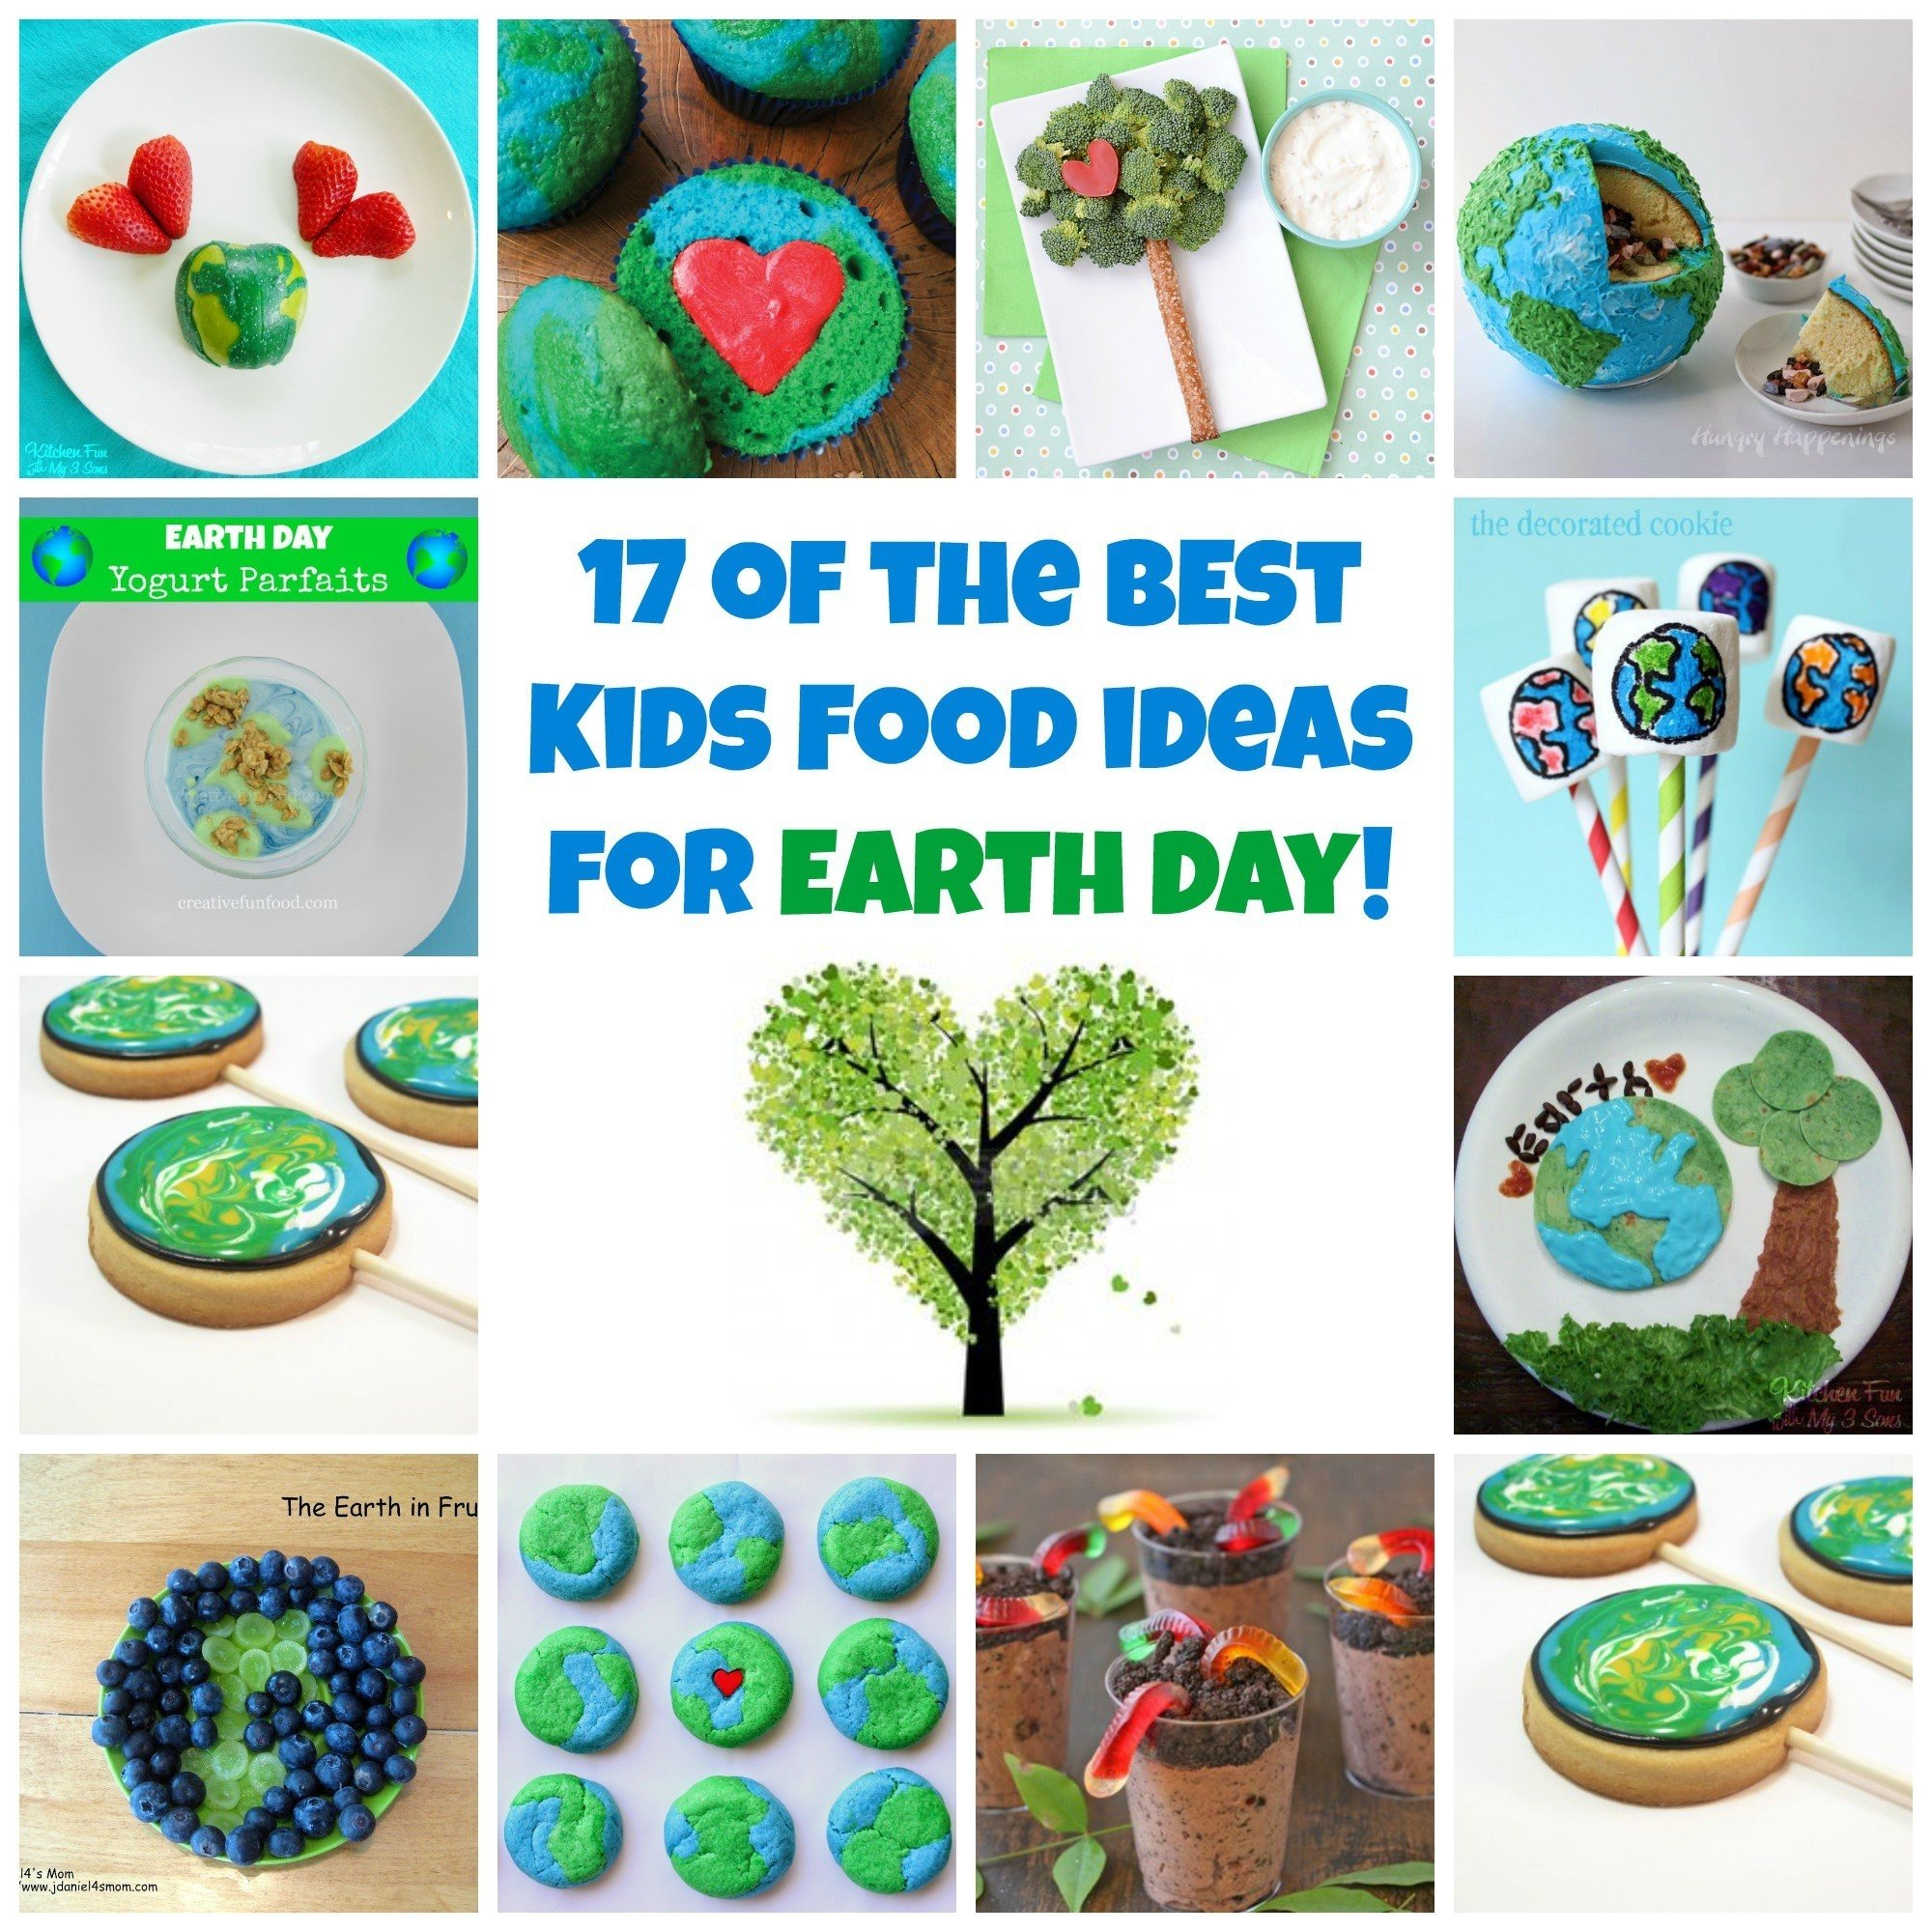 17 of the best earth day fun food & recipe ideas for kids | fun food